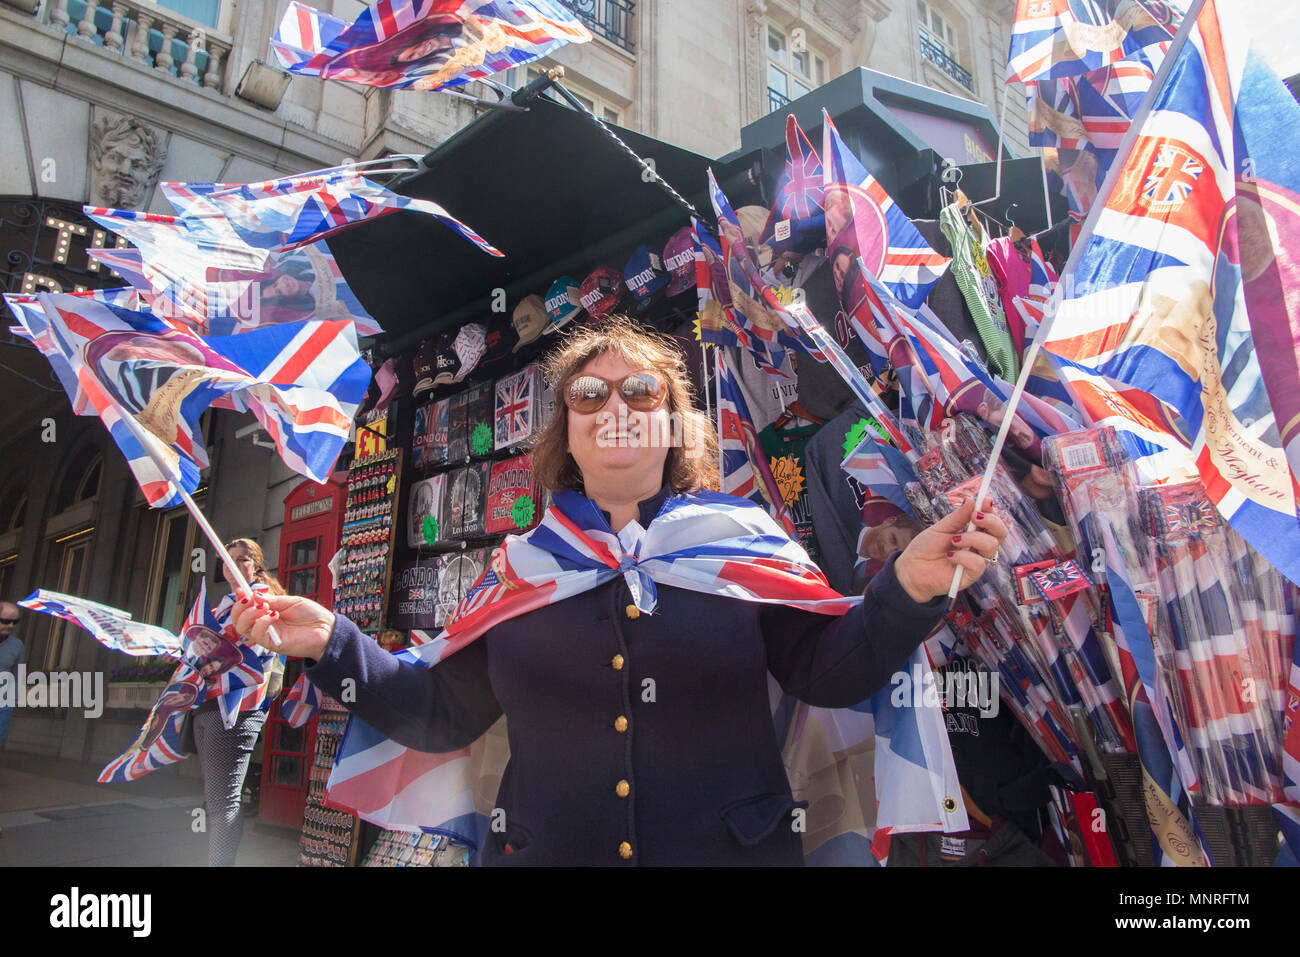 A woman waves a flag at a souvenir stall on Piccadilly in London to celebrate the marriage of Harry and Meghan Markle - Stock Image